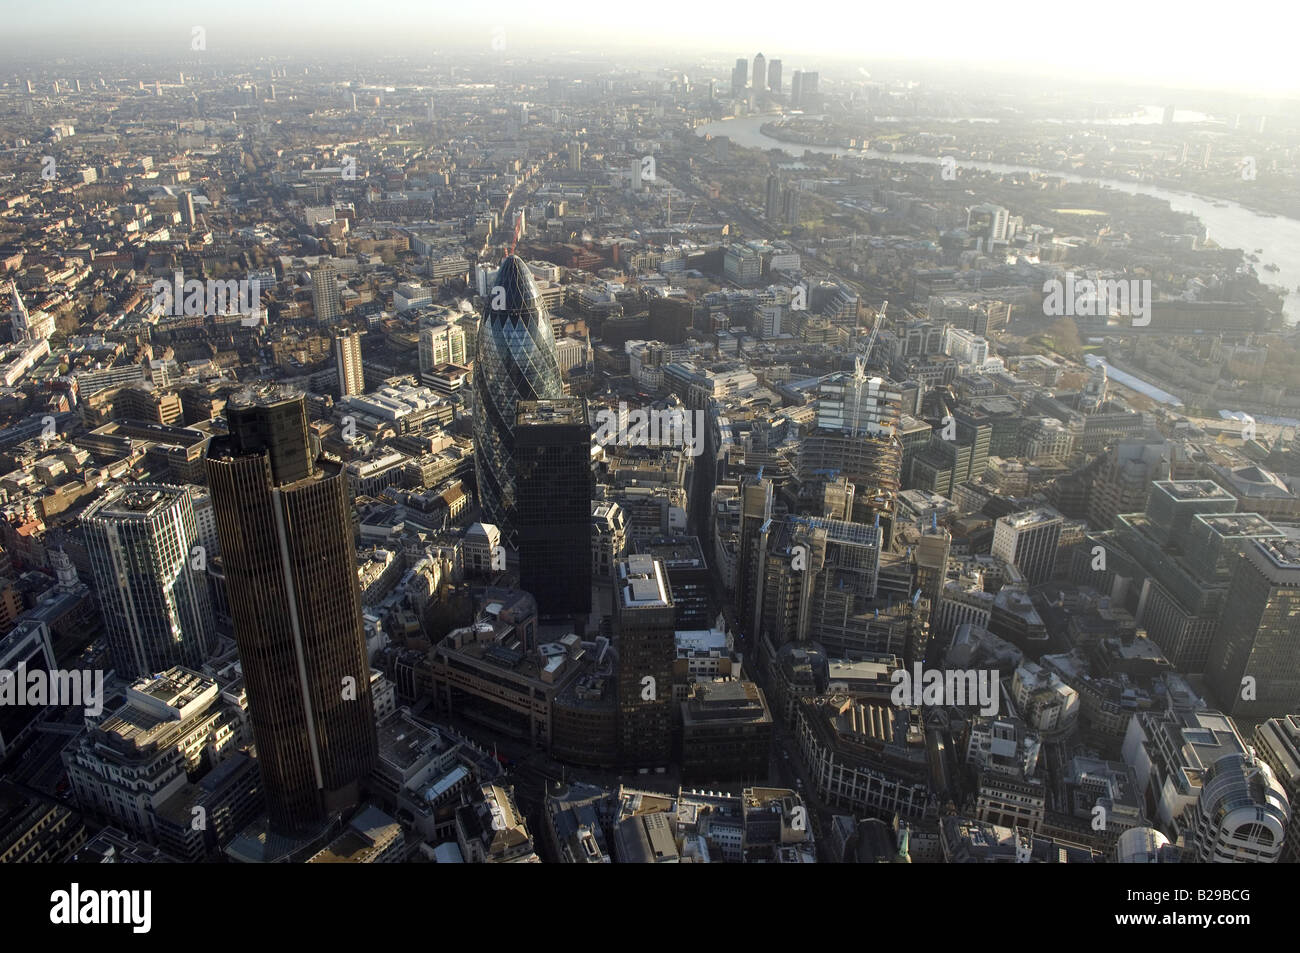 The City of London Date 12 03 2008 Ref ZB648 111149 0054 COMPULSORY CREDIT World Pictures Photoshot - Stock Image